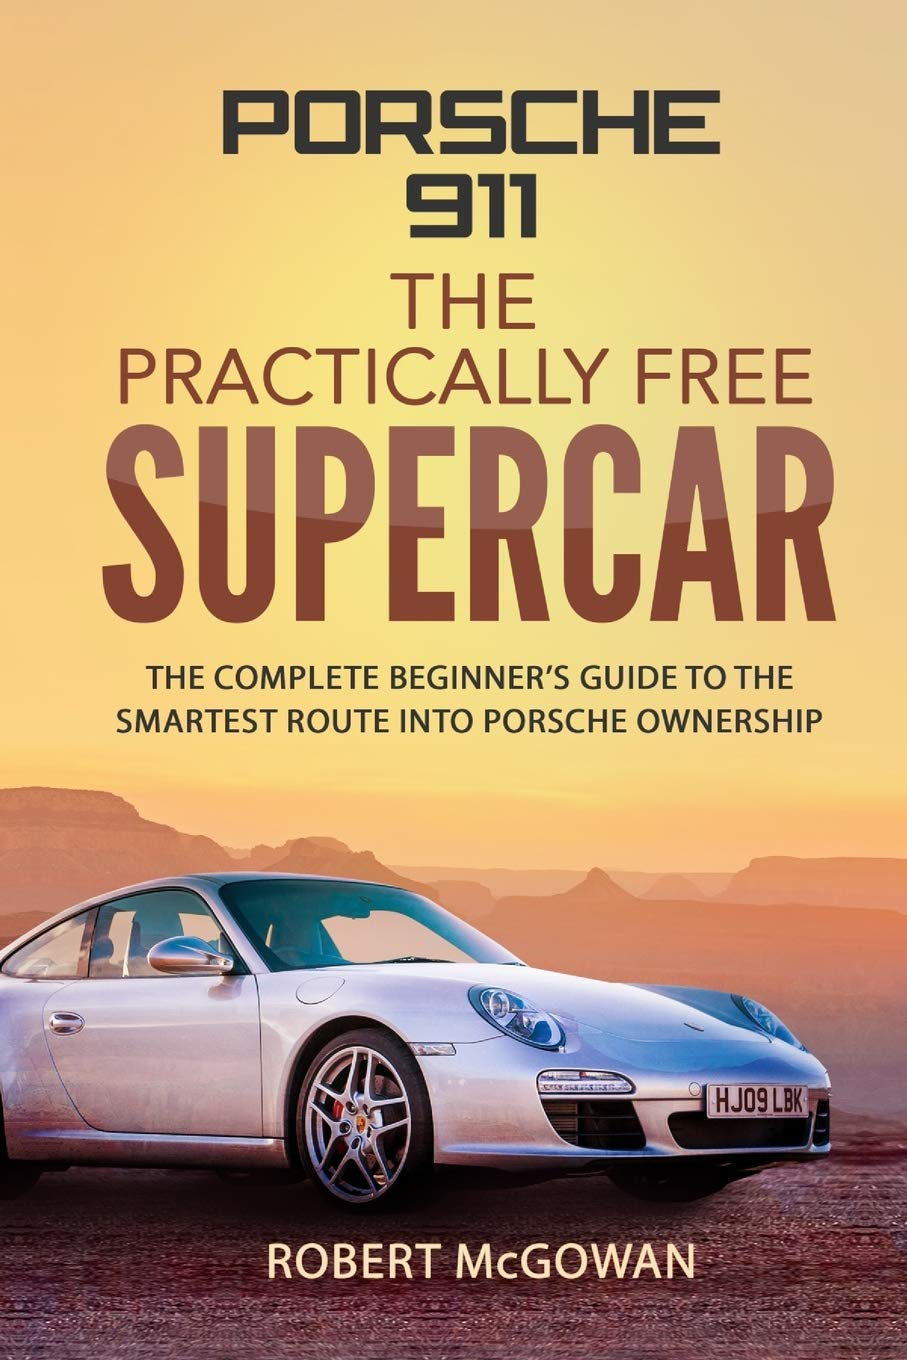 Porsche 911: The Practically Free Supercar: The complete beginners guide to the smartest route into Porsche ownership Paperback – April 27, 2018